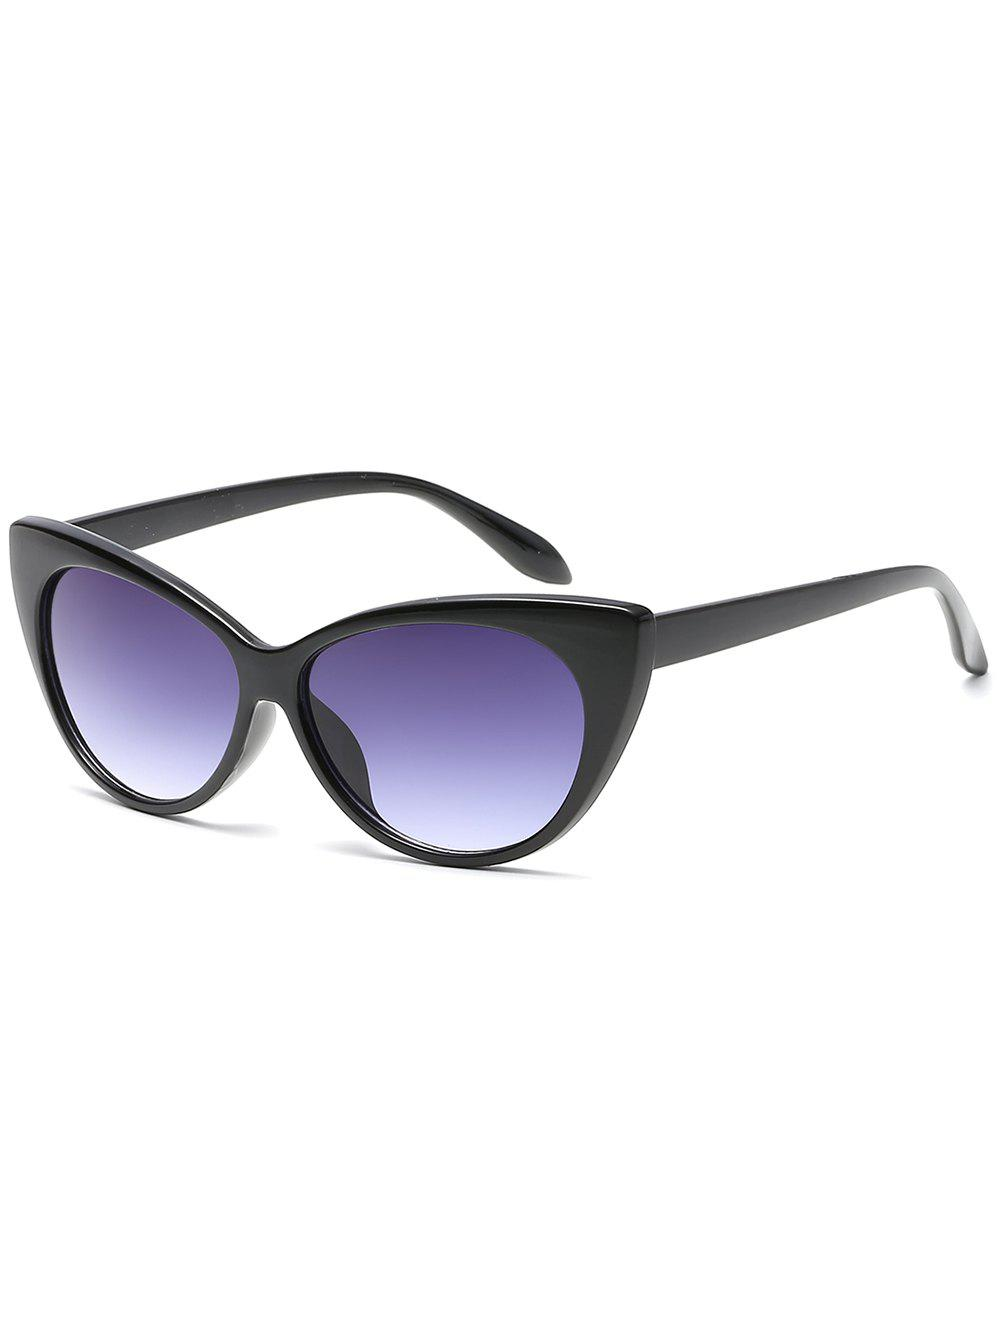 Unique Lightweight Flat Lens Full Frame Catty Sunglasses